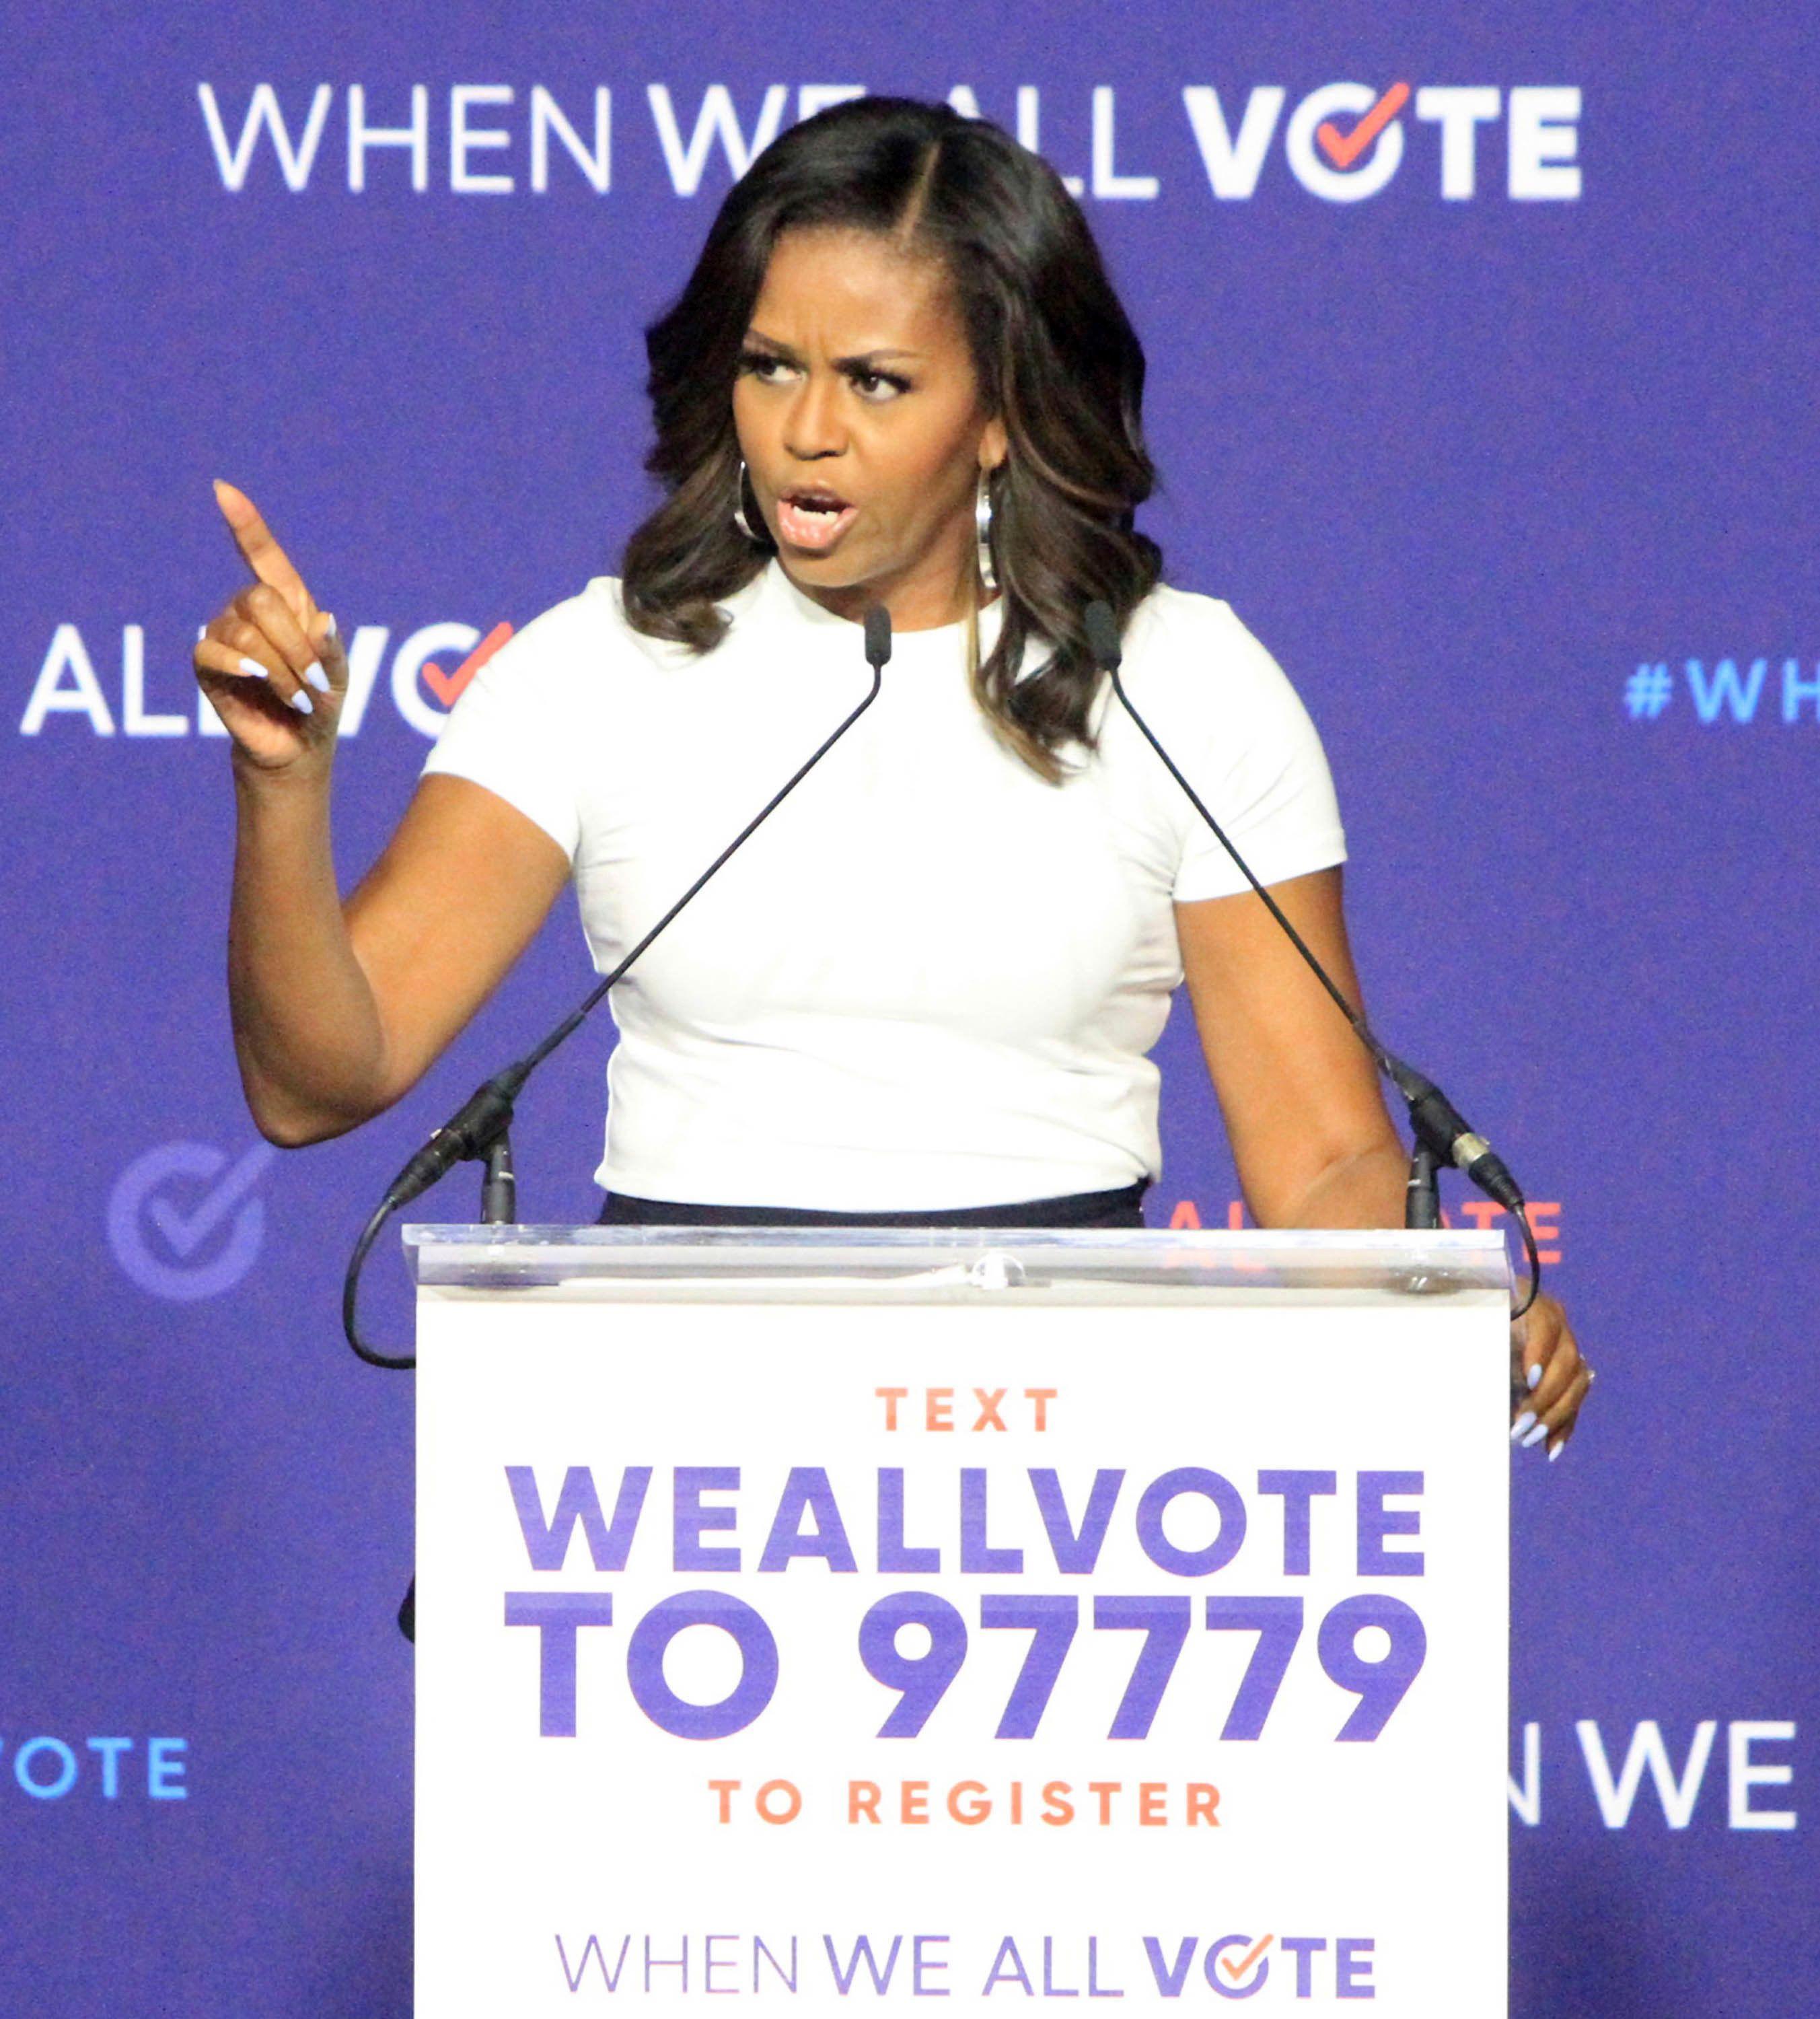 """Photo by: Raoul Gatchalian/STAR MAX/IPx 2018 9/23/18 Michelle Obama at the """"When We All Vote"""" Rally at Chaparral High School in Las Vegas, Nevada."""